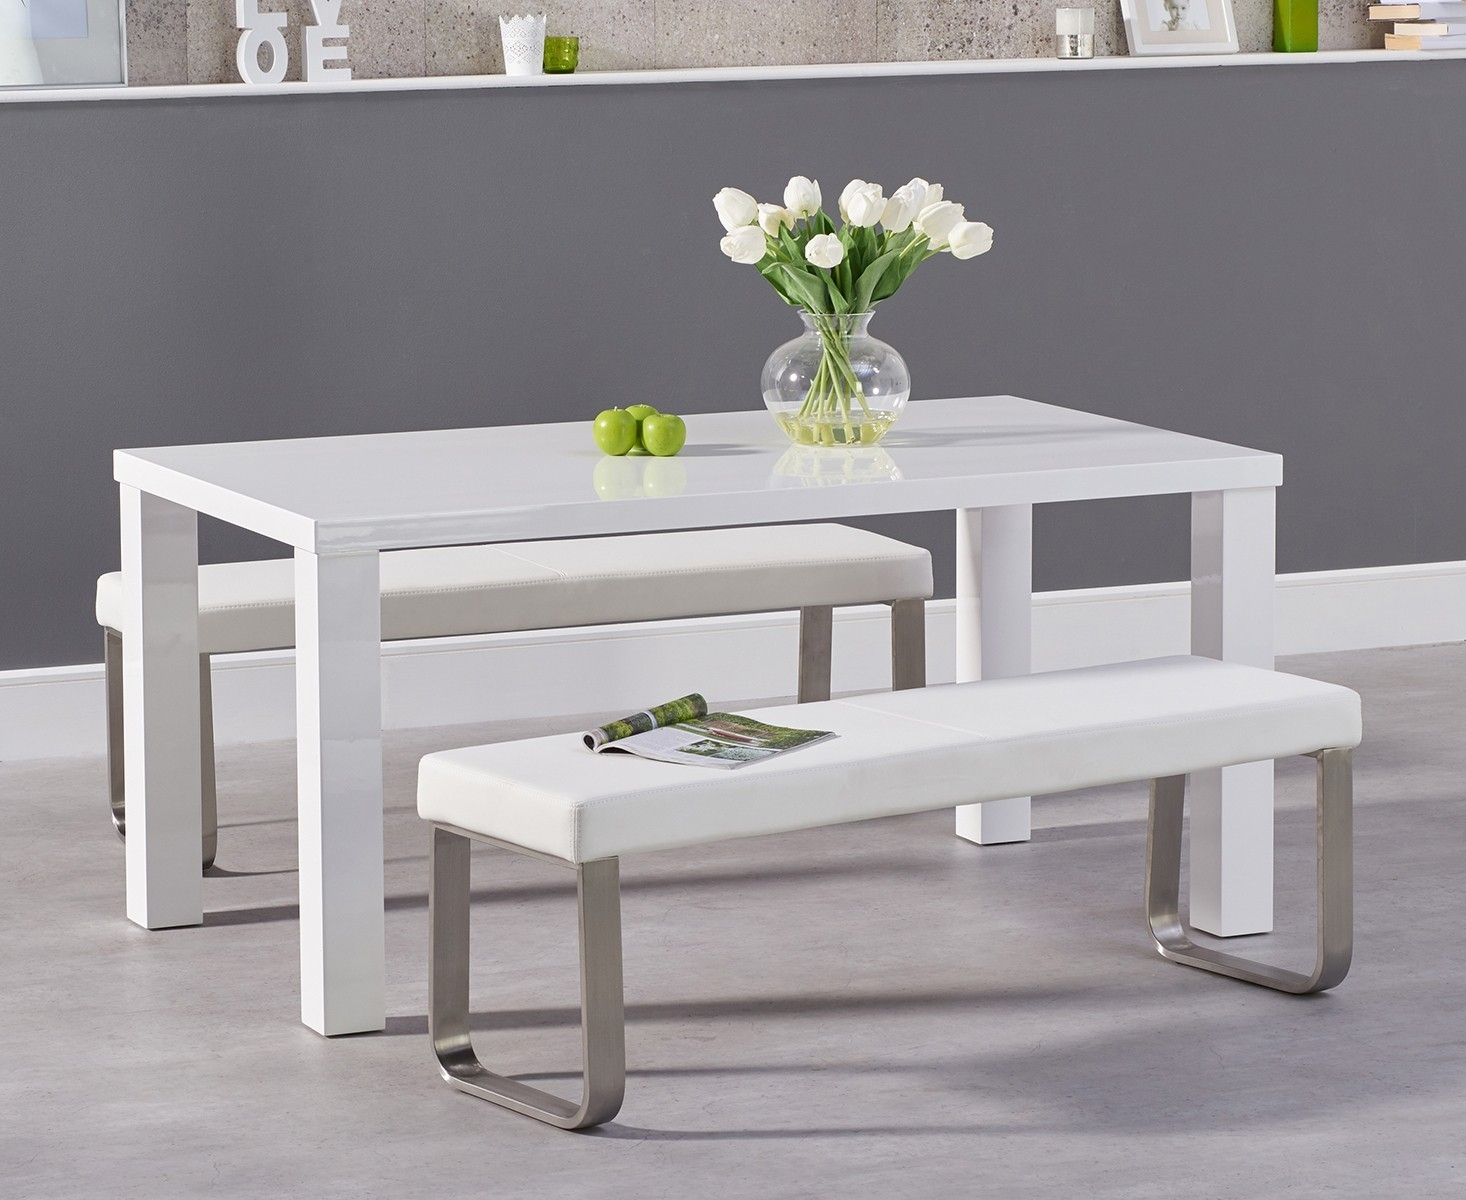 An image of Atlanta 160cm White High Gloss Dining Table with Atlanta Benches